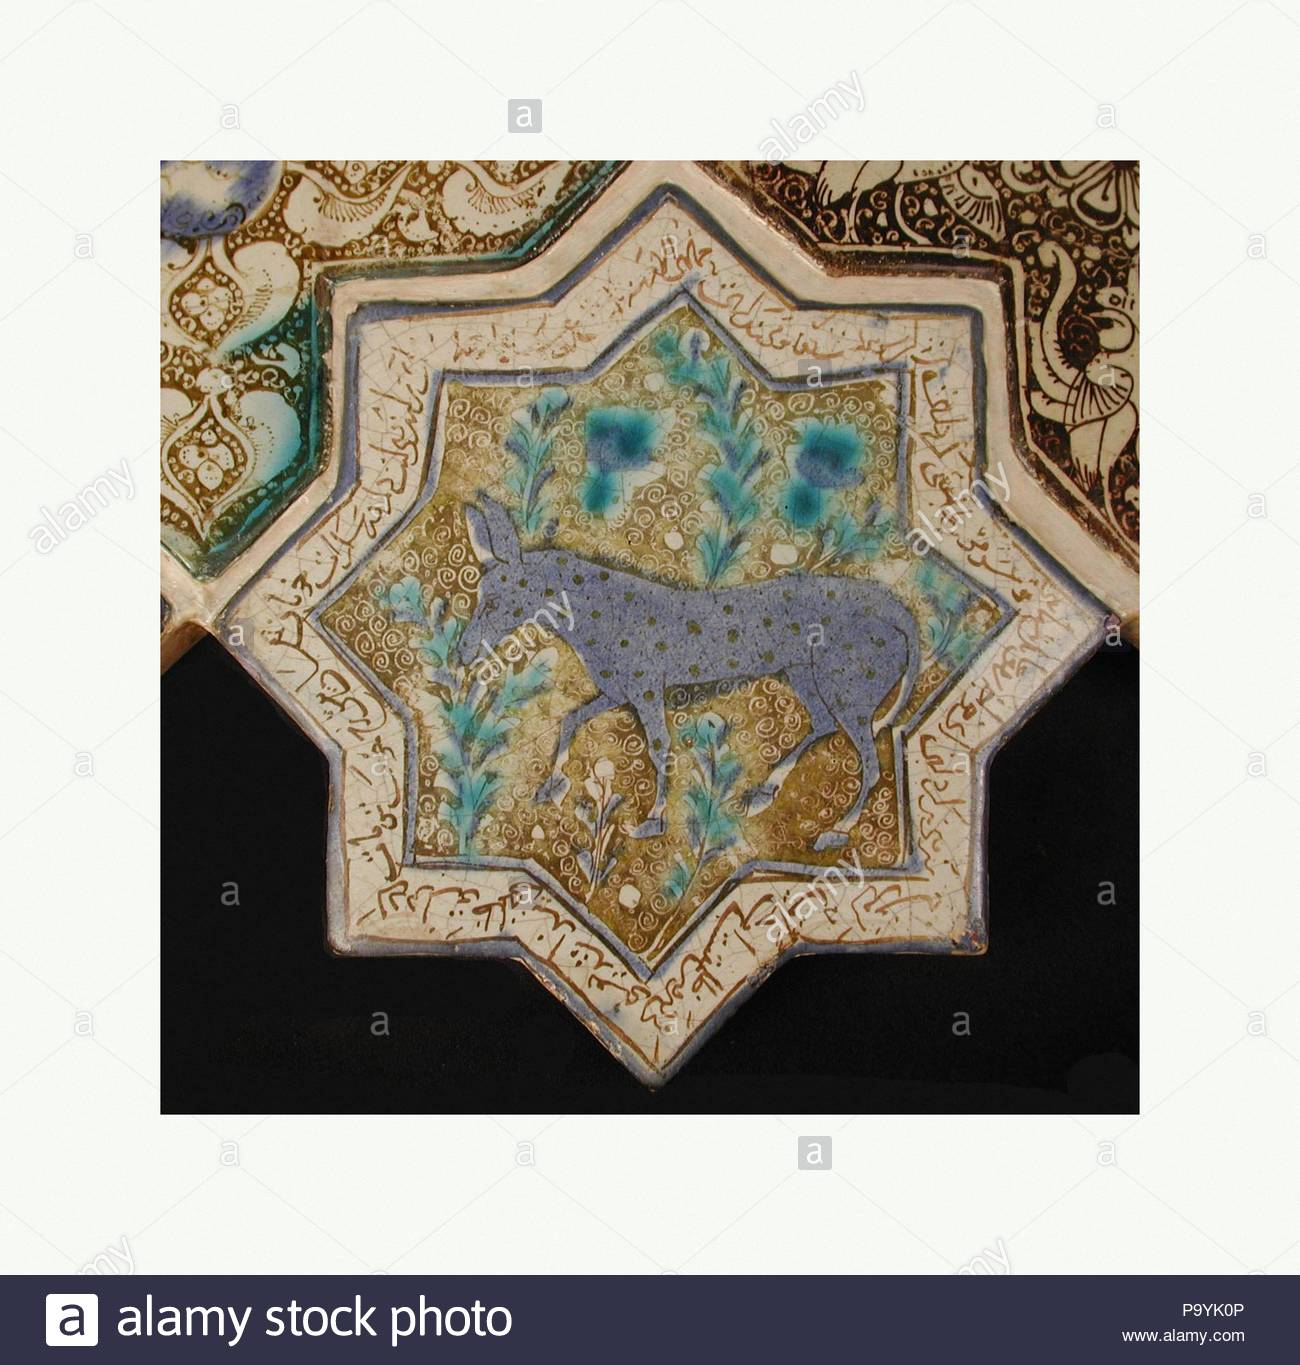 Star Shaped Tile 13th14th Century Made In Iran Probably Kashan